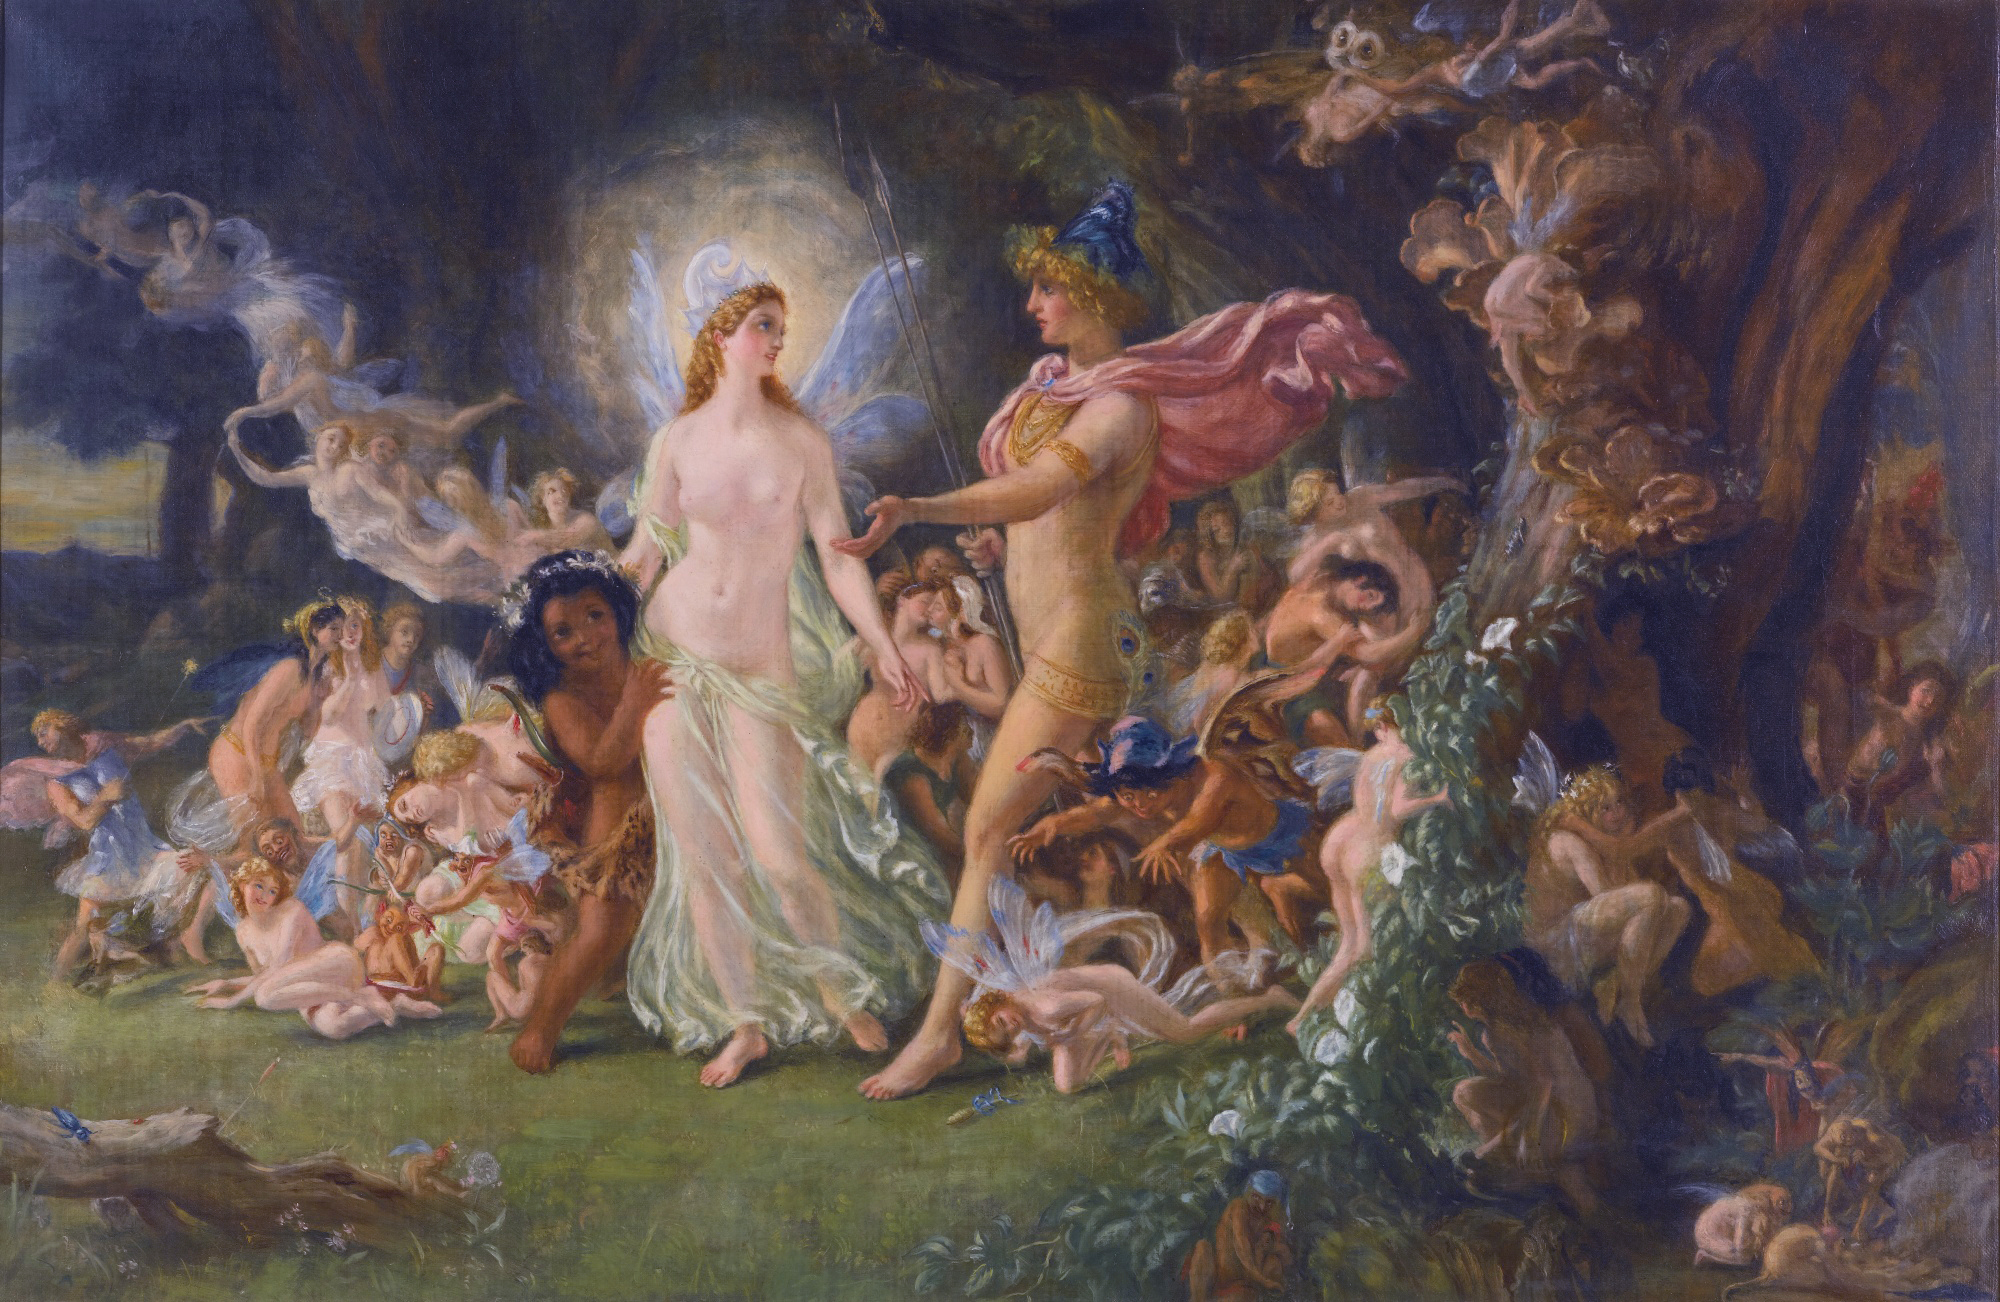 File:Study for The Quarrel of Oberon and Titania.jpg